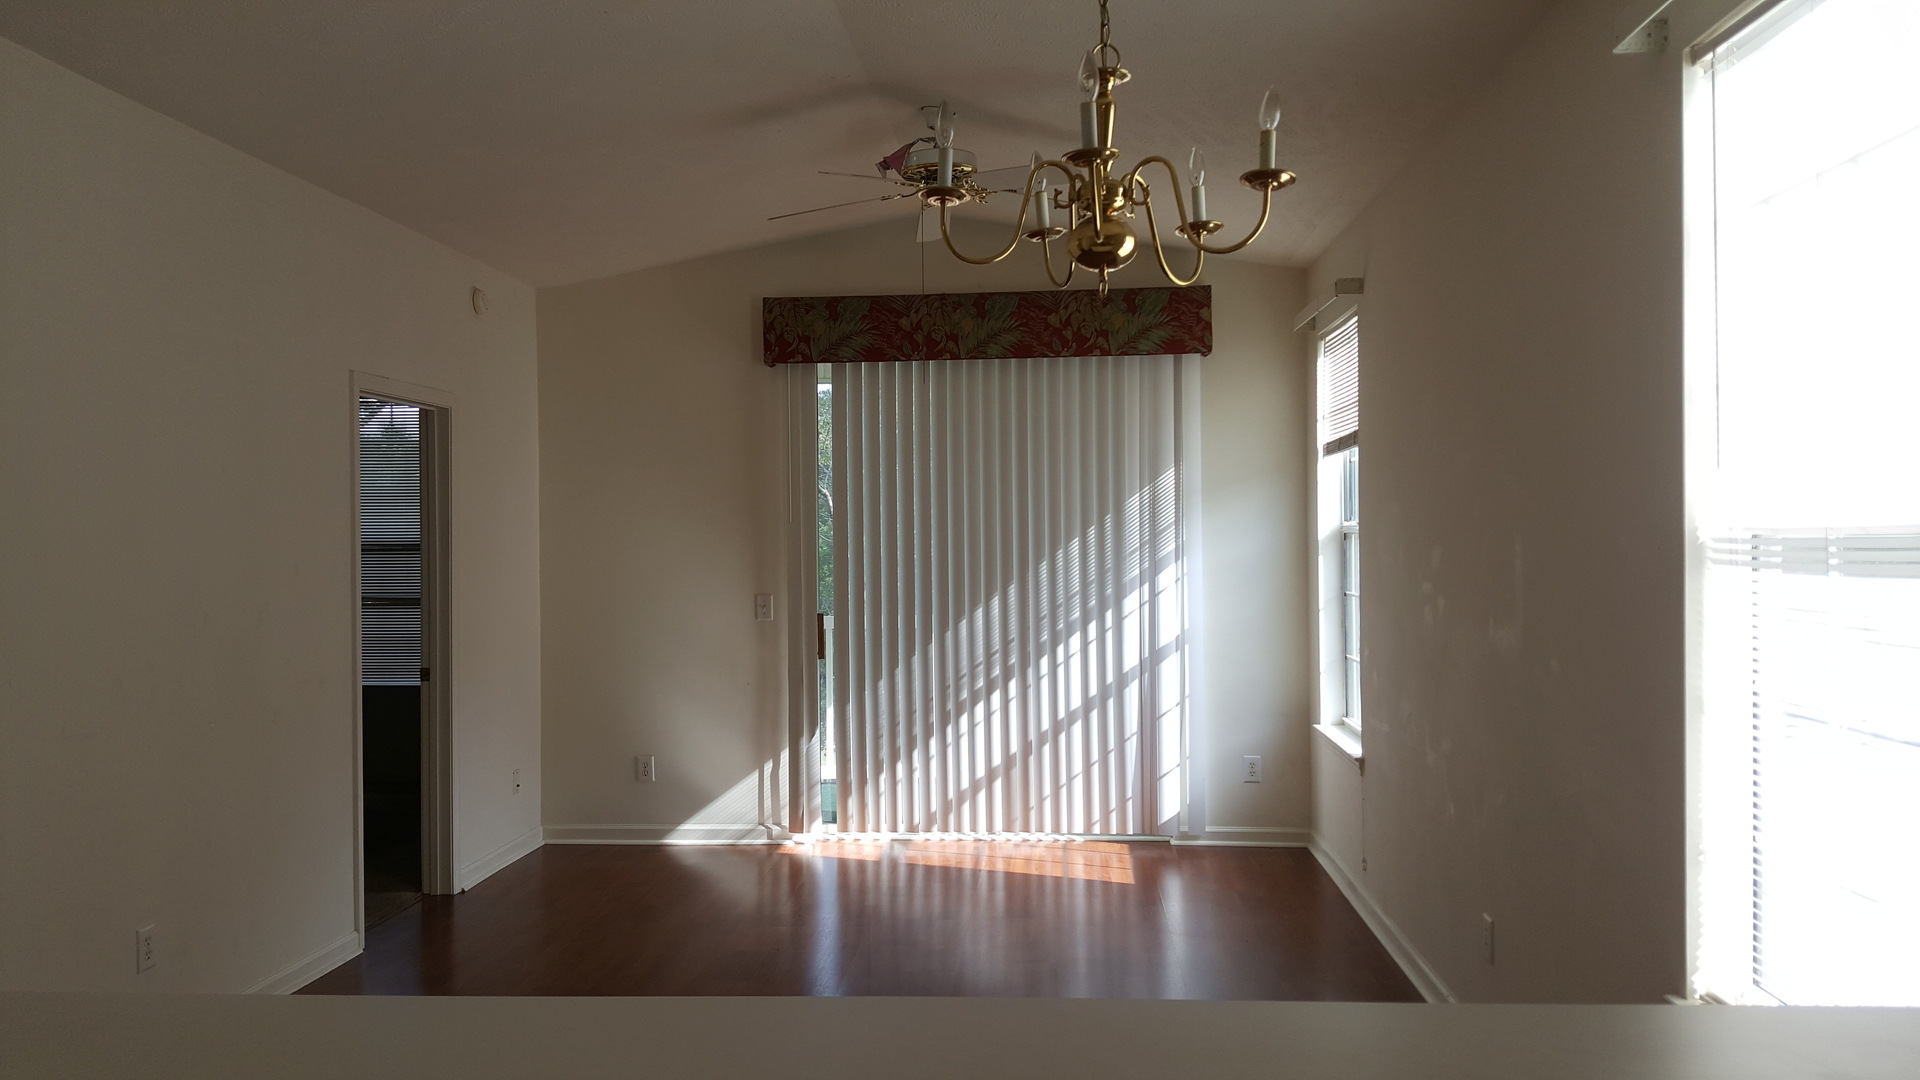 2 Bedroom Condo With New Paint, Carpet, And Appliances